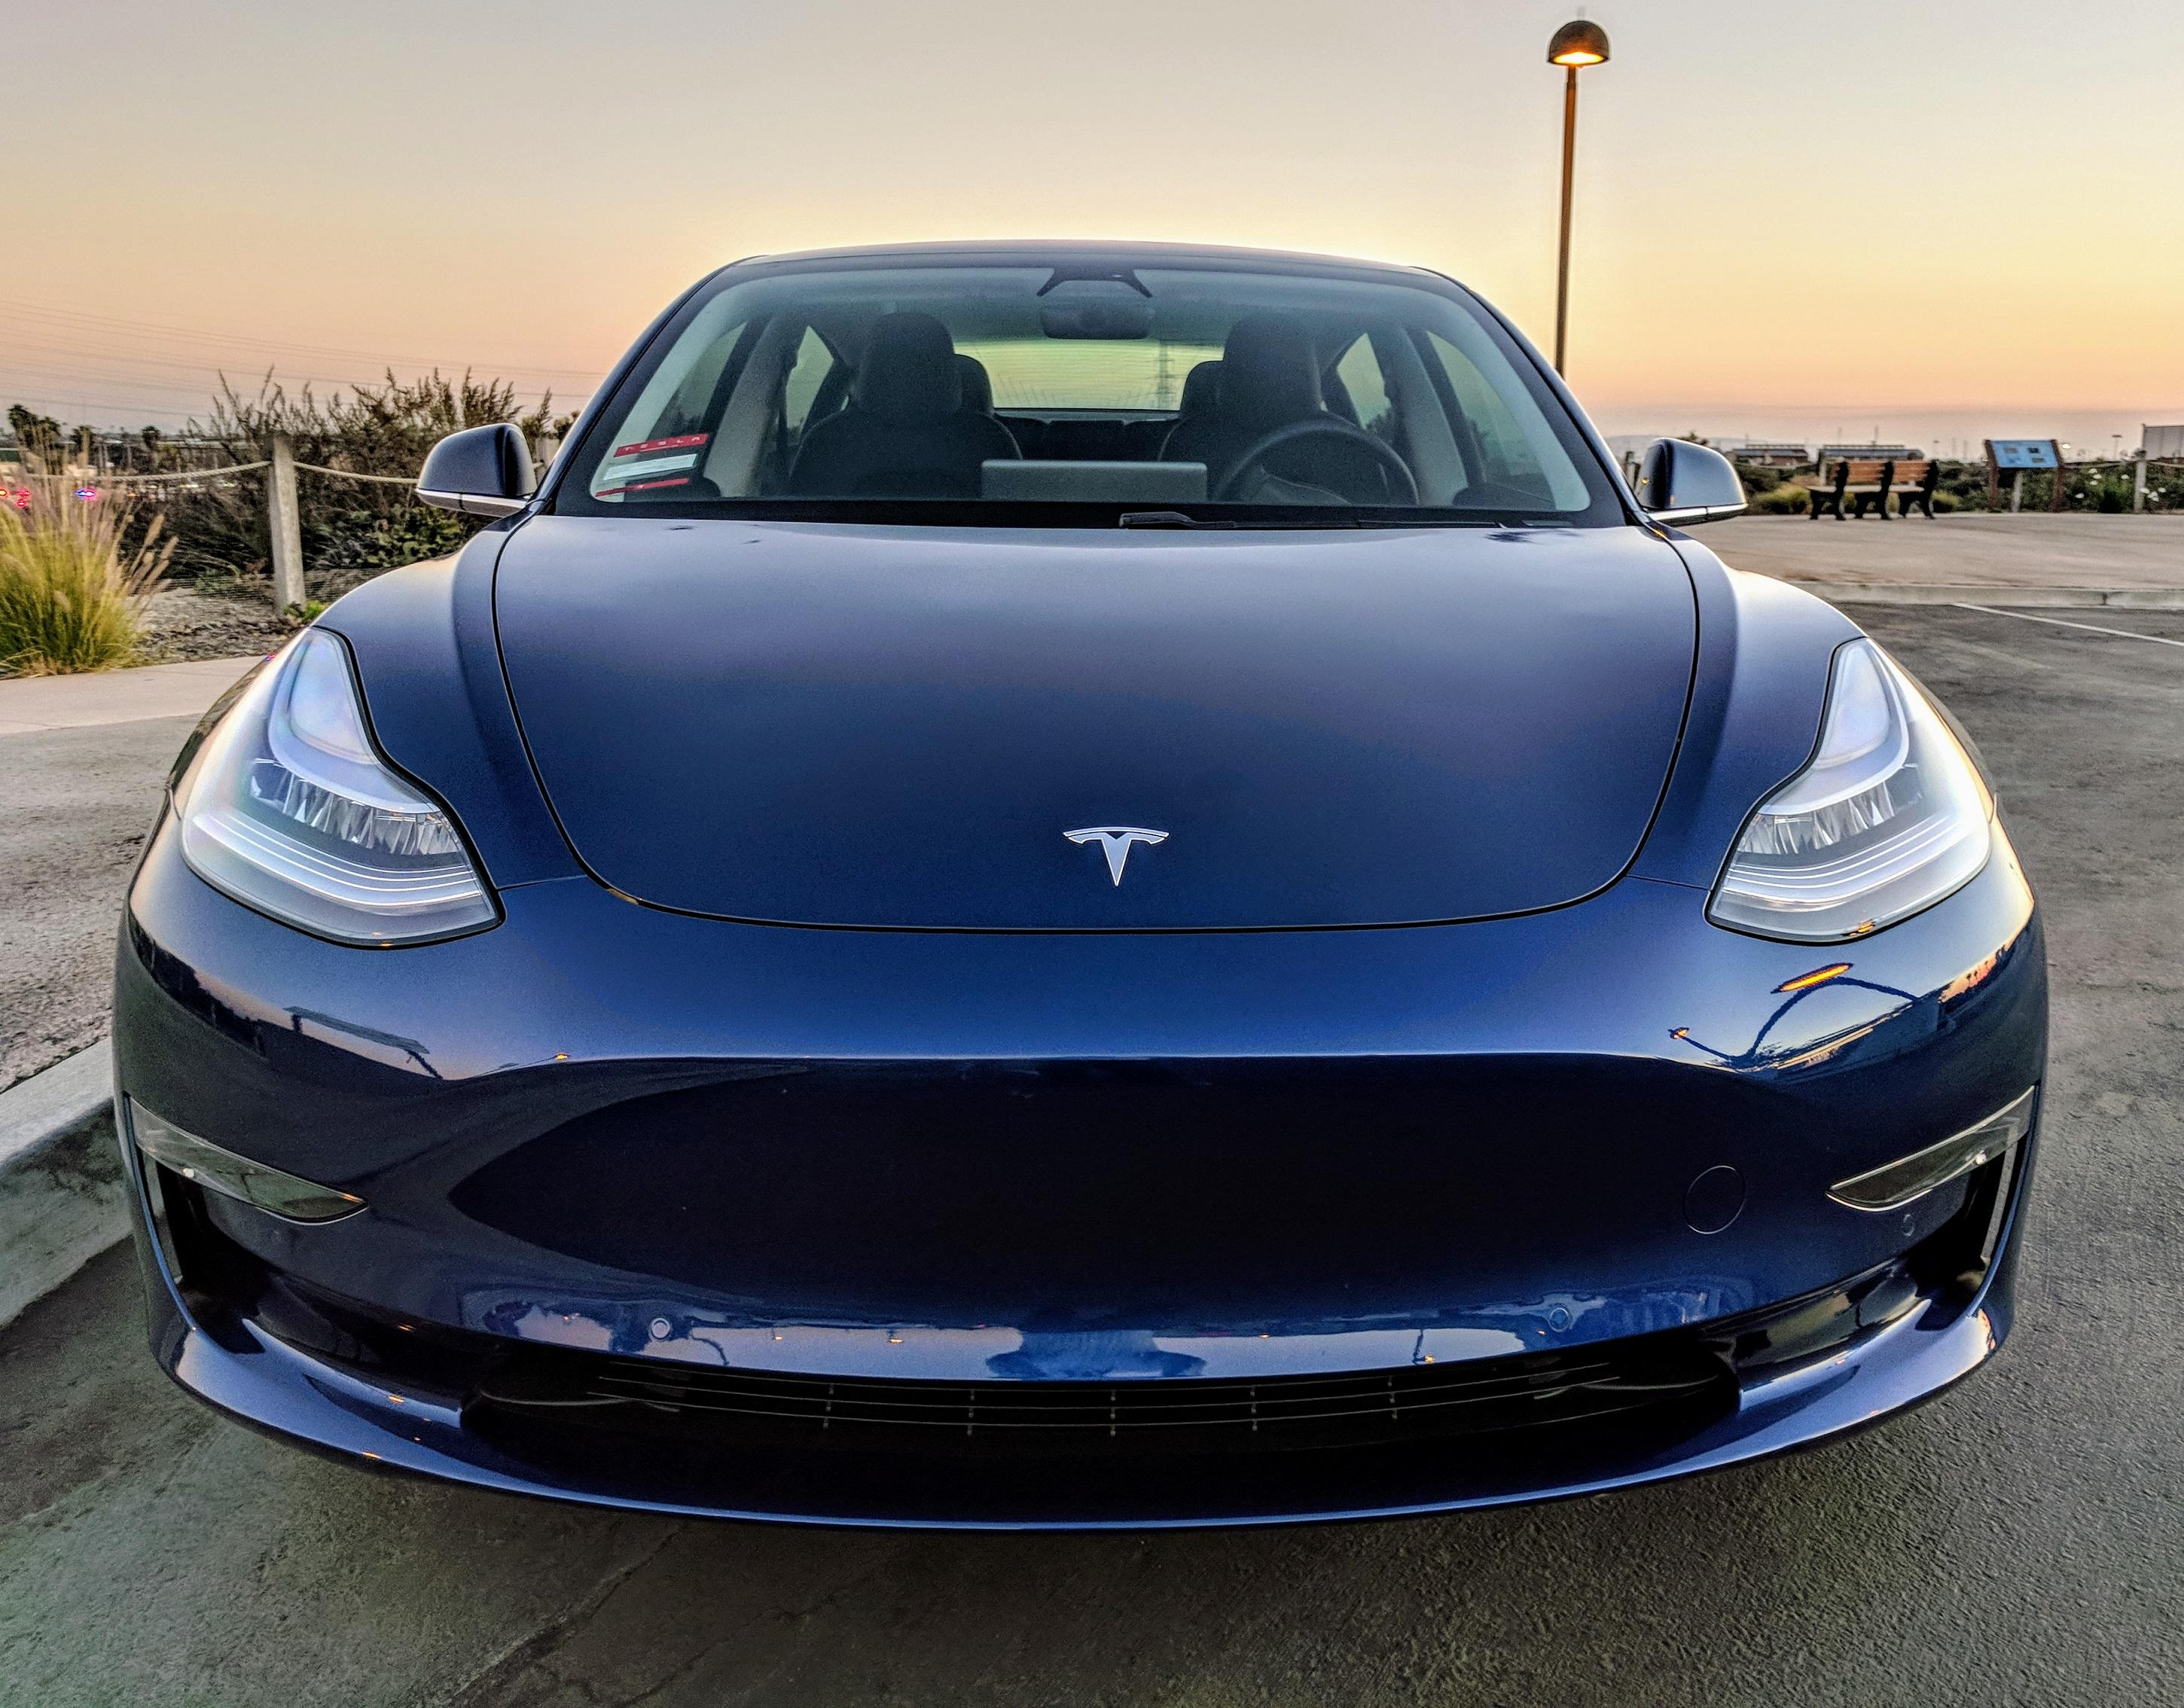 Tesla: The Model 3 Moment Has Arrived